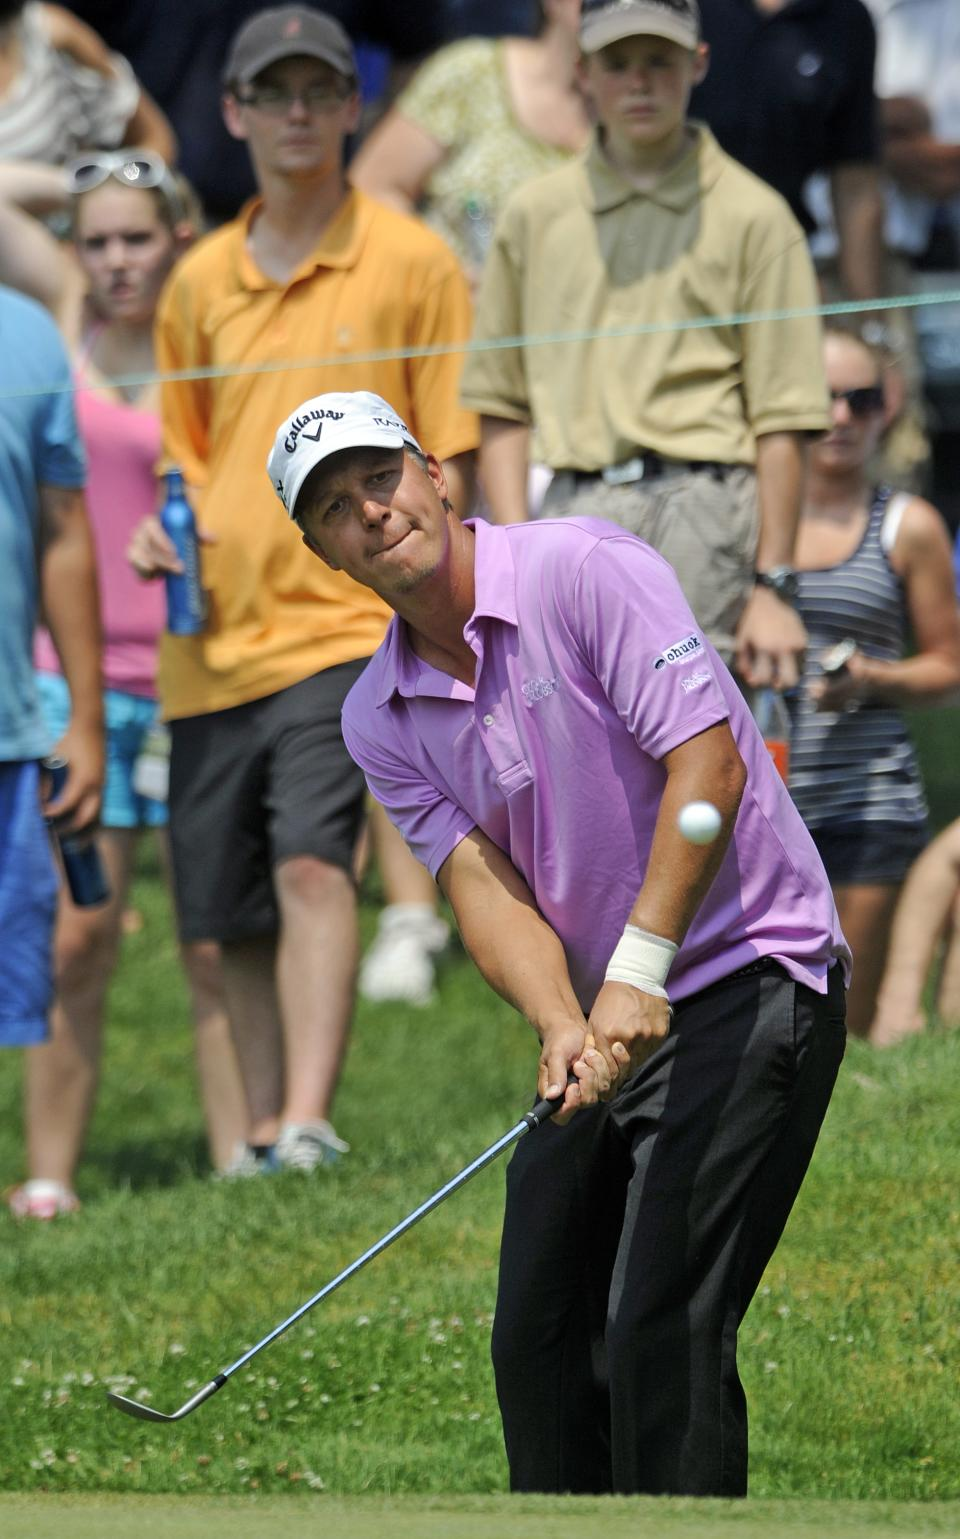 Frederik Jacobsen, of Sweden, chips onto the seventh green during the second round of the Travelers Championship golf tournament in Cromwell, Conn., Friday, June 22, 2012.  (AP Photo/Fred Beckham)